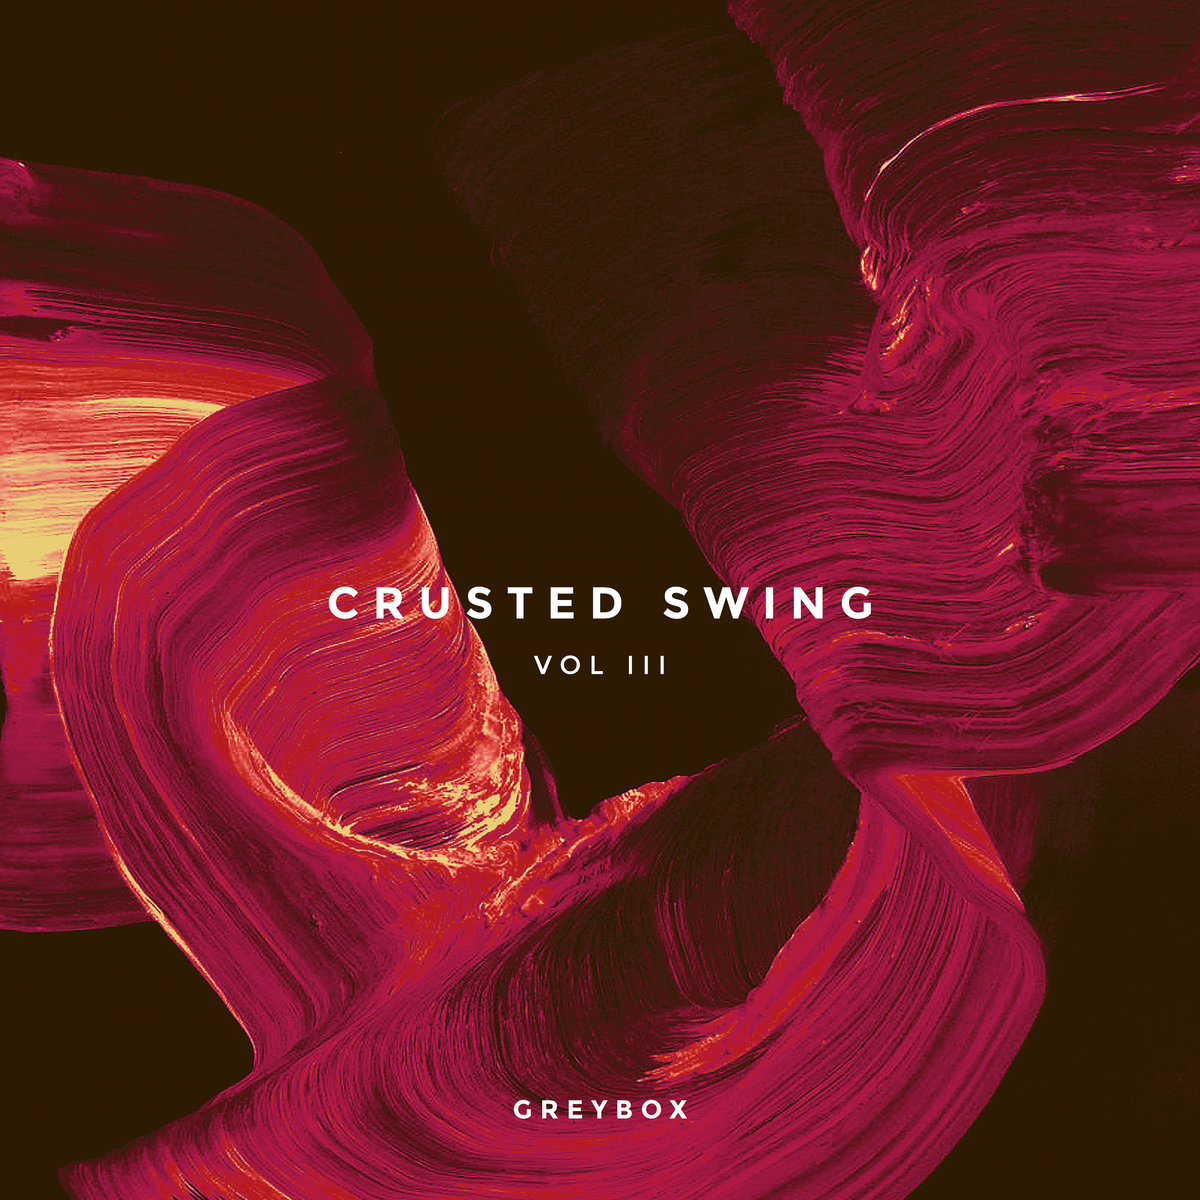 Greybox - Crusted Swing III